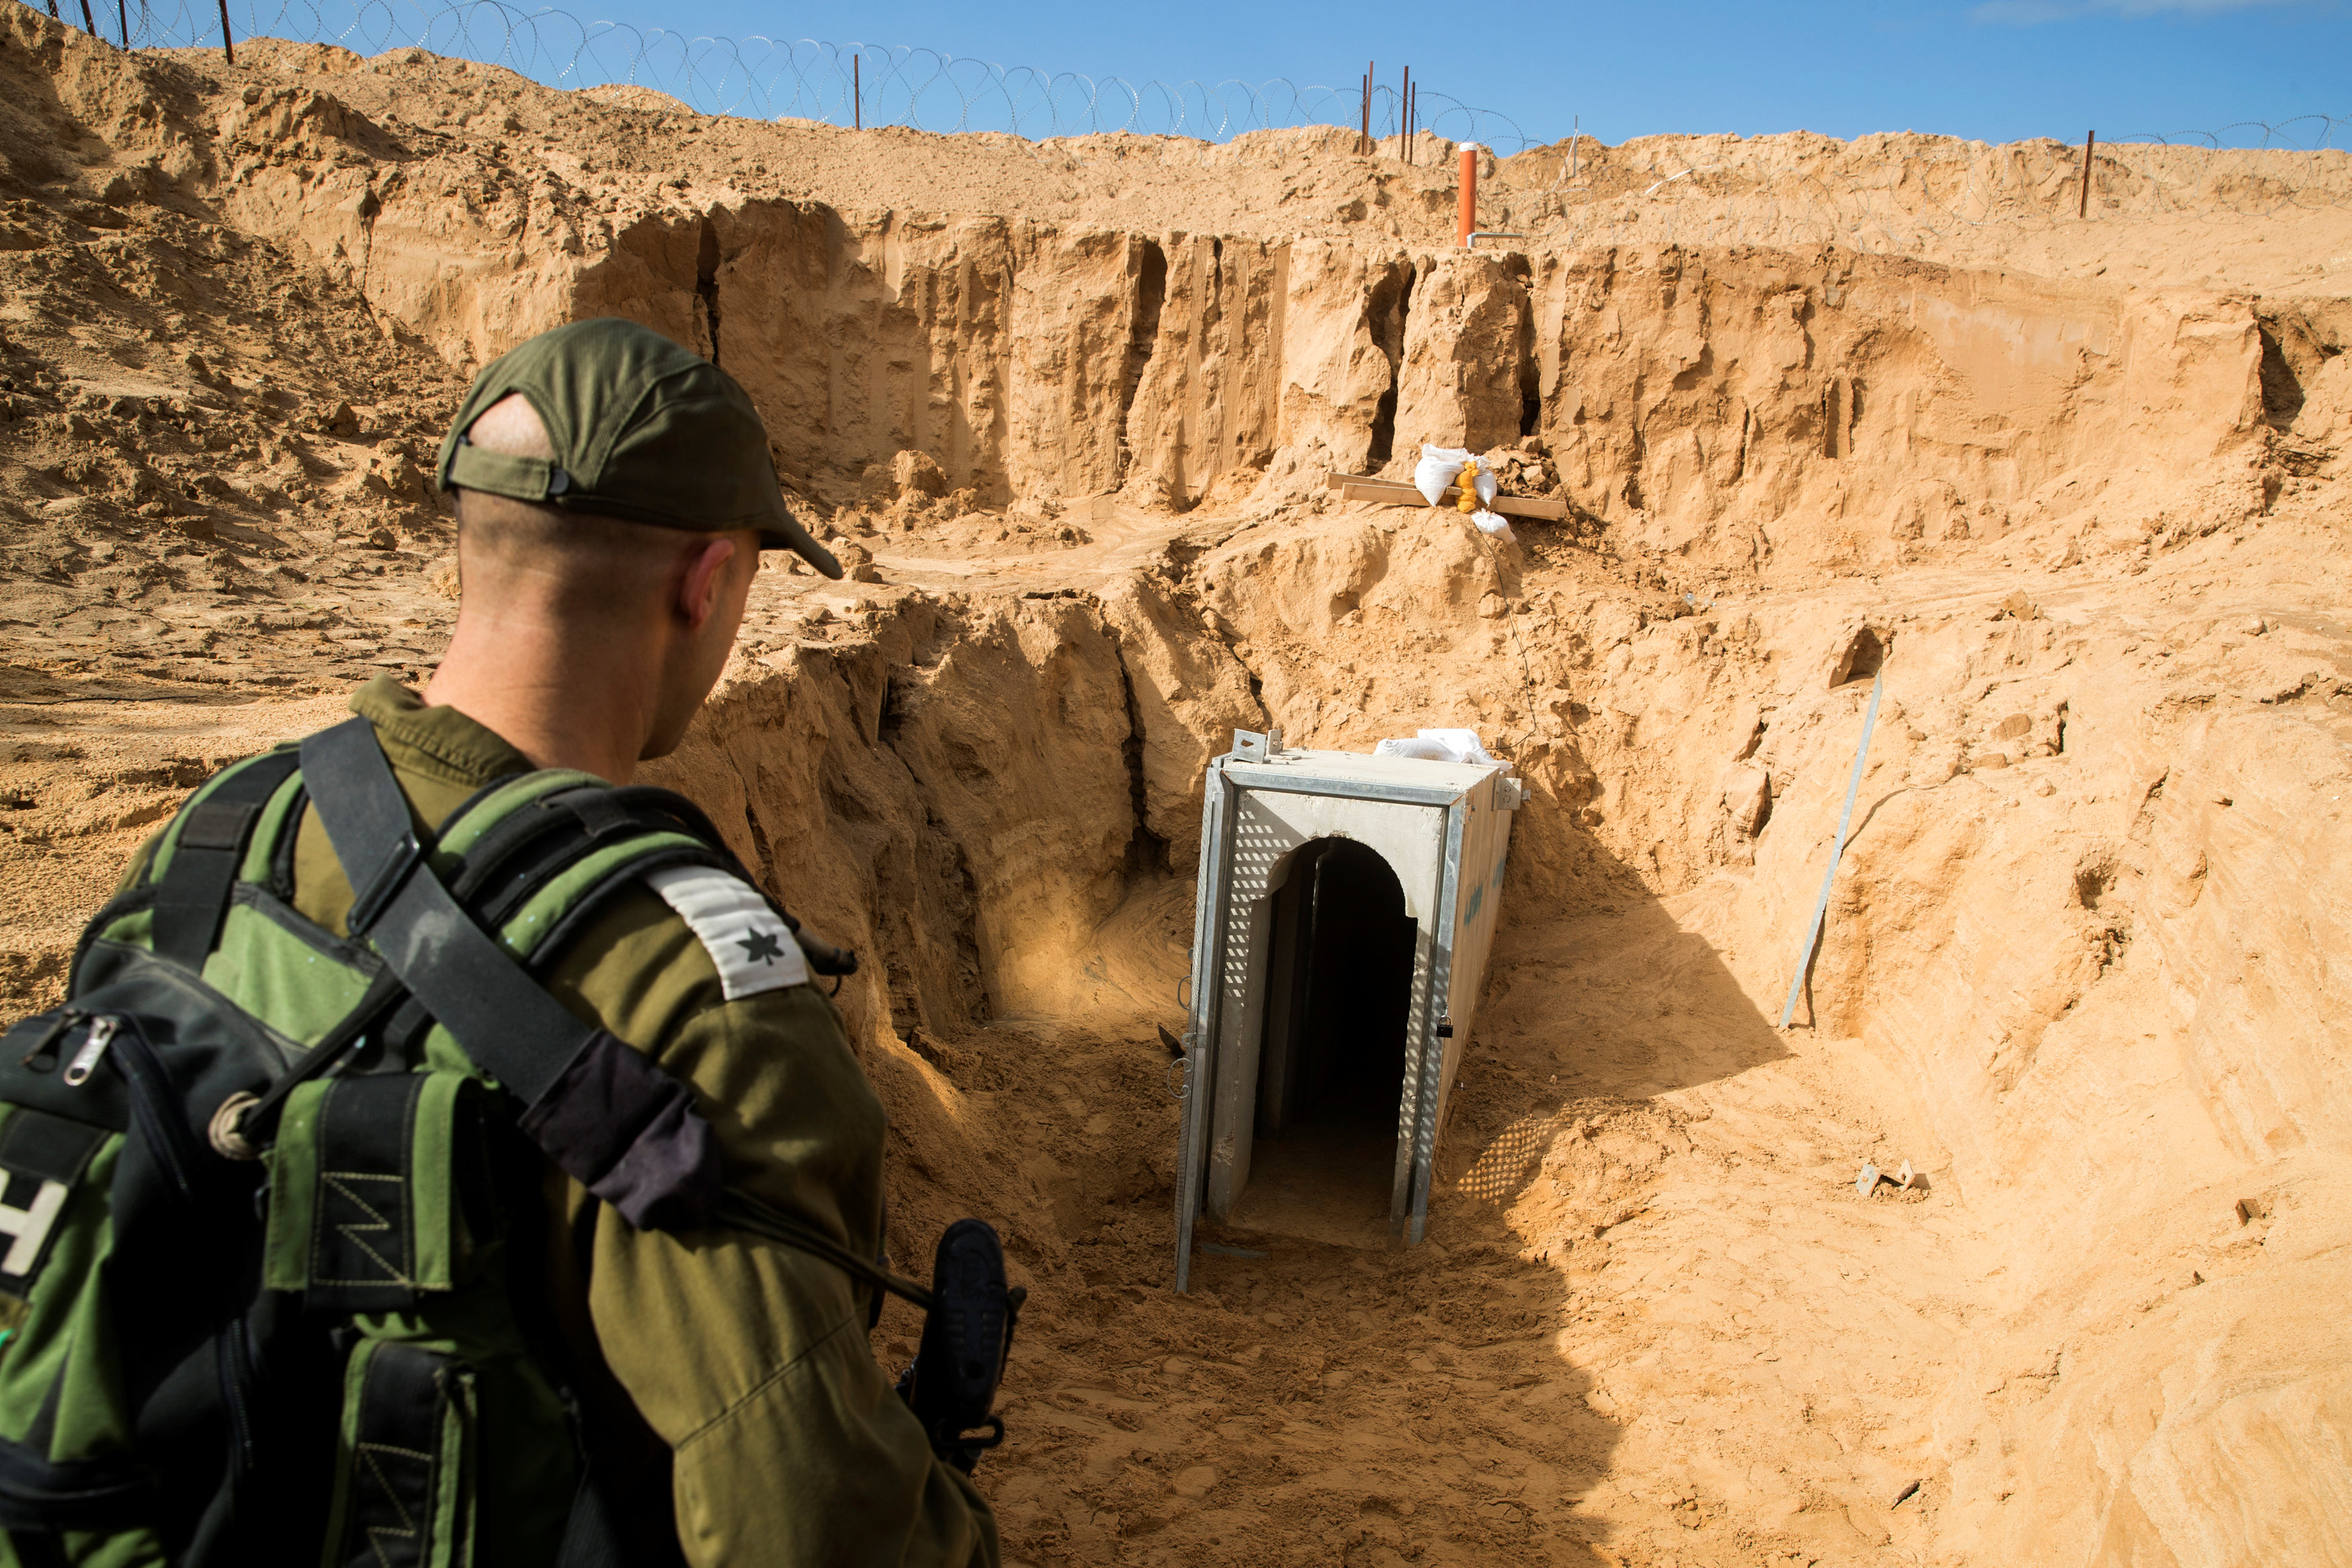 An Israeli soldier stands next to an entrance to what the Israeli military say is a cross-border attack tunnel dug from Gaza to Israel, on the Israeli side of the Gaza Strip border near Kissufim, Israel January 18, 2018